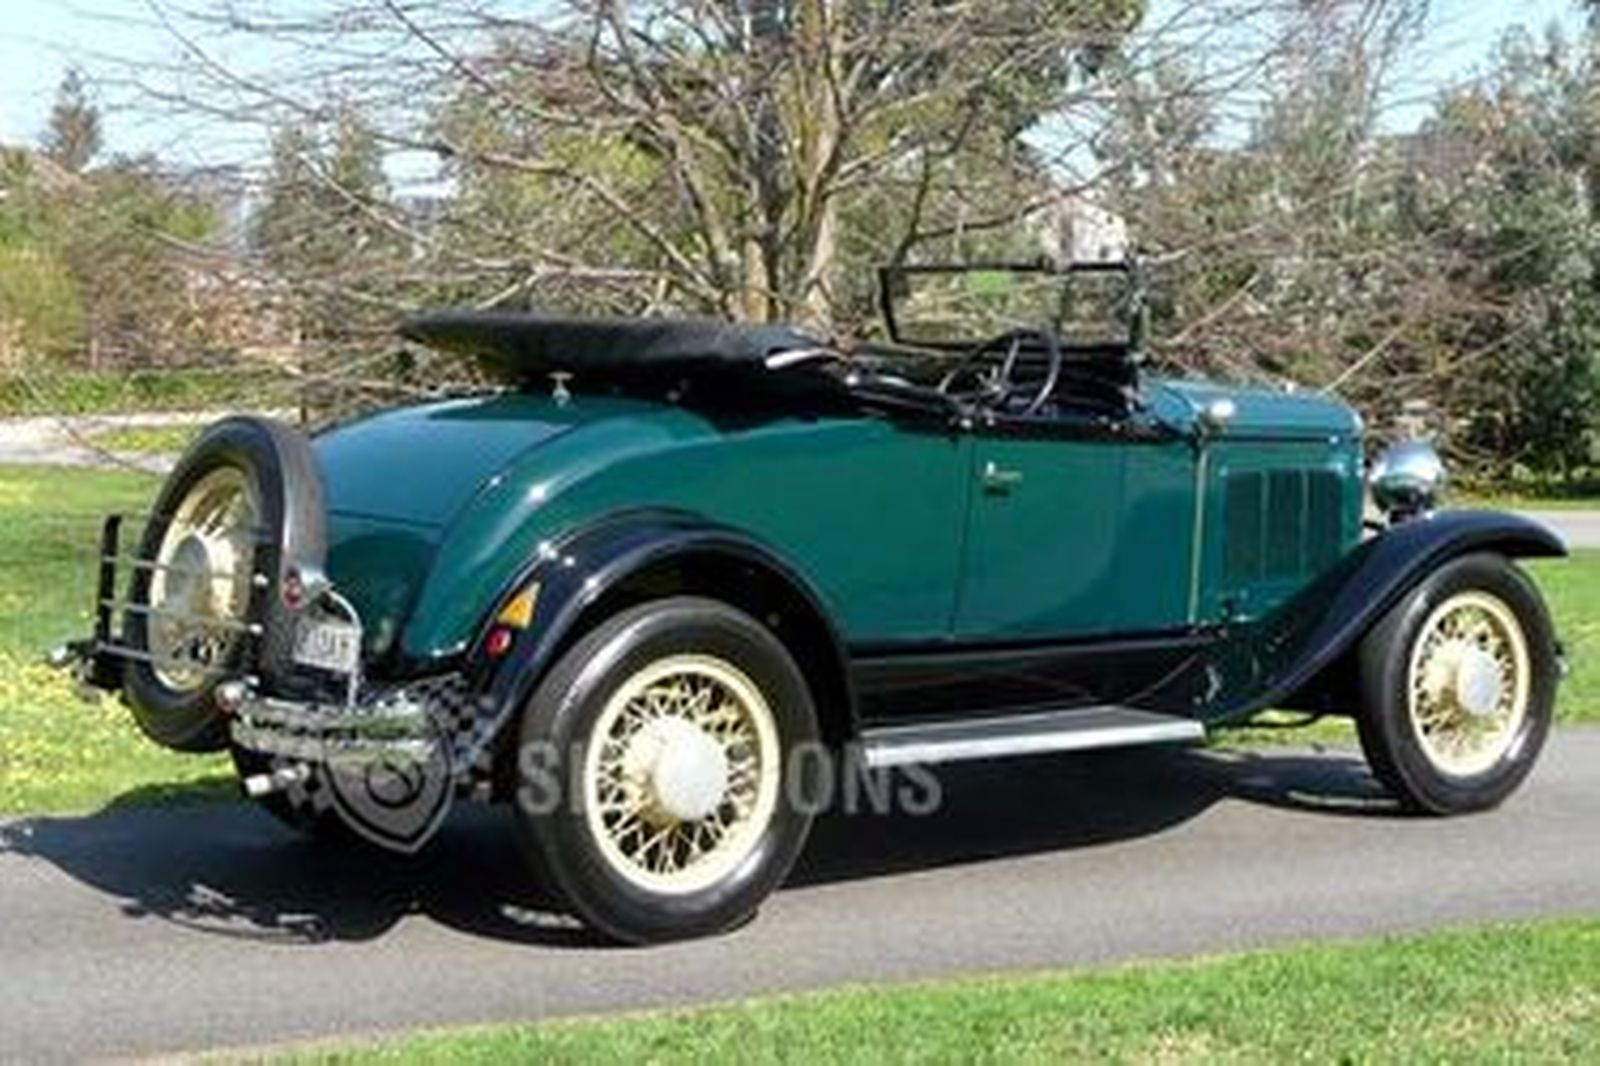 Desoto roadster auctions lot 15 shannons for Motor vehicle open on saturday